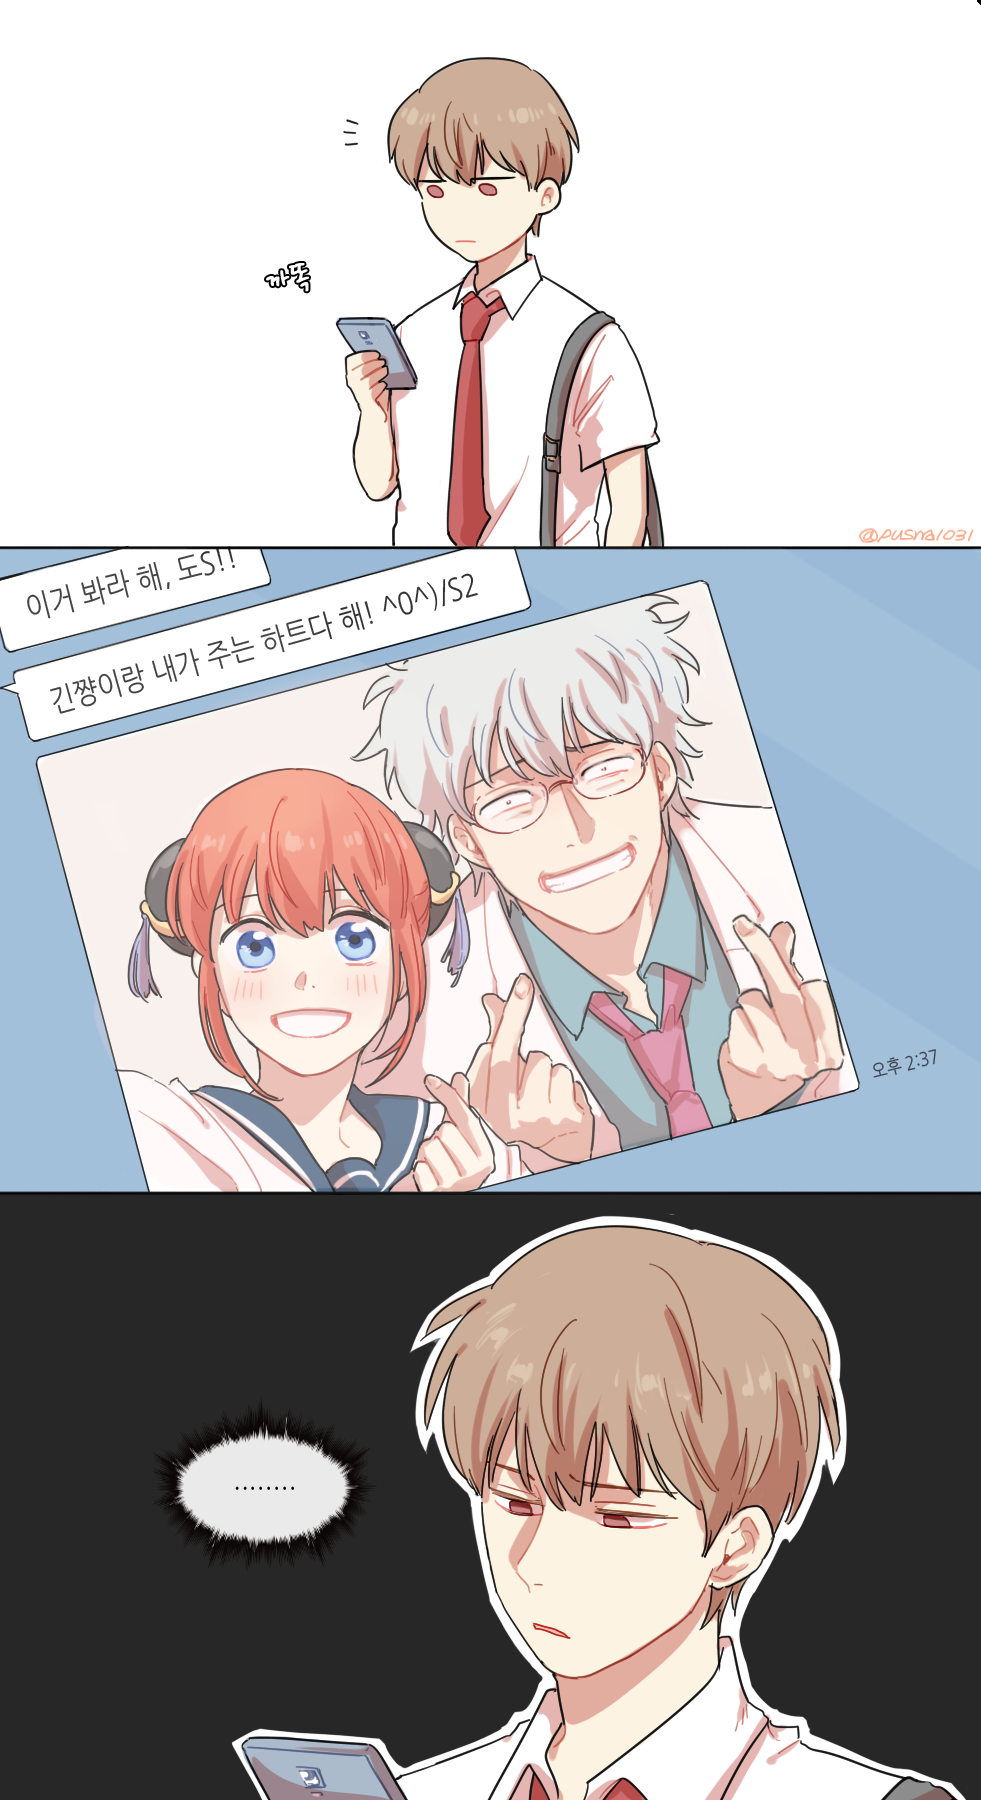 okita and kagura relationship